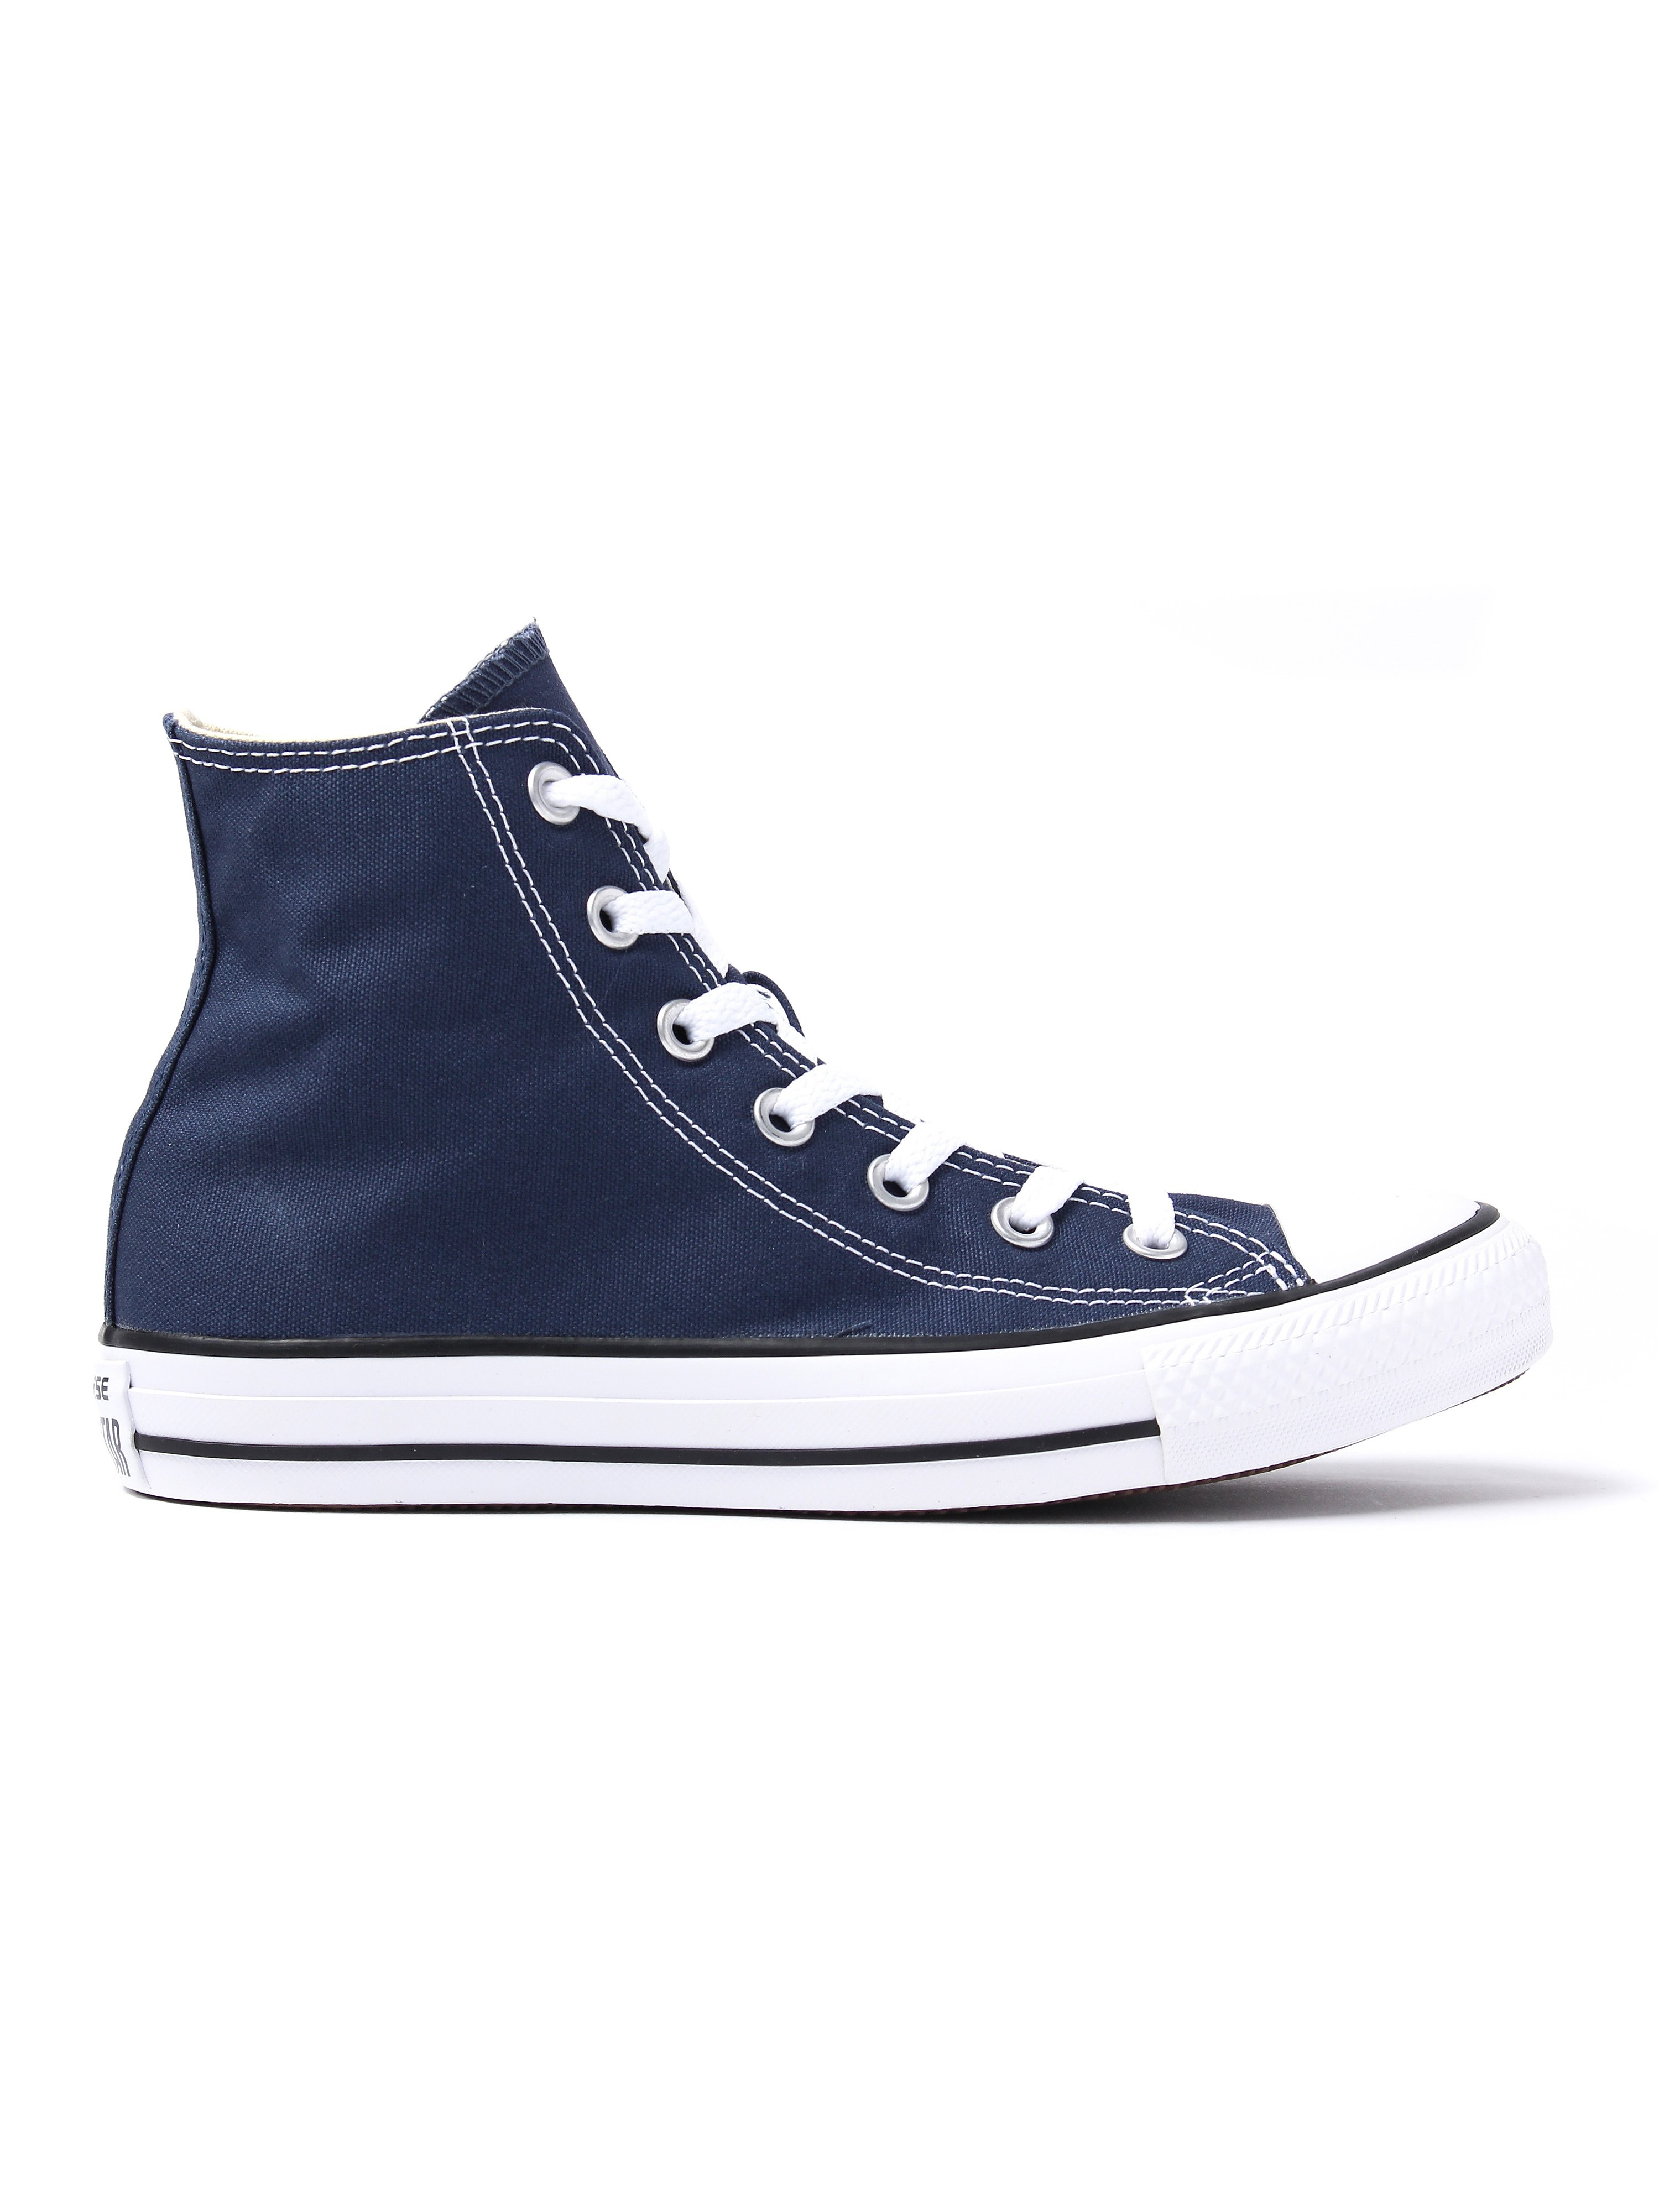 Converse Men's Chuck Taylor All Star HI Trainers - Navy